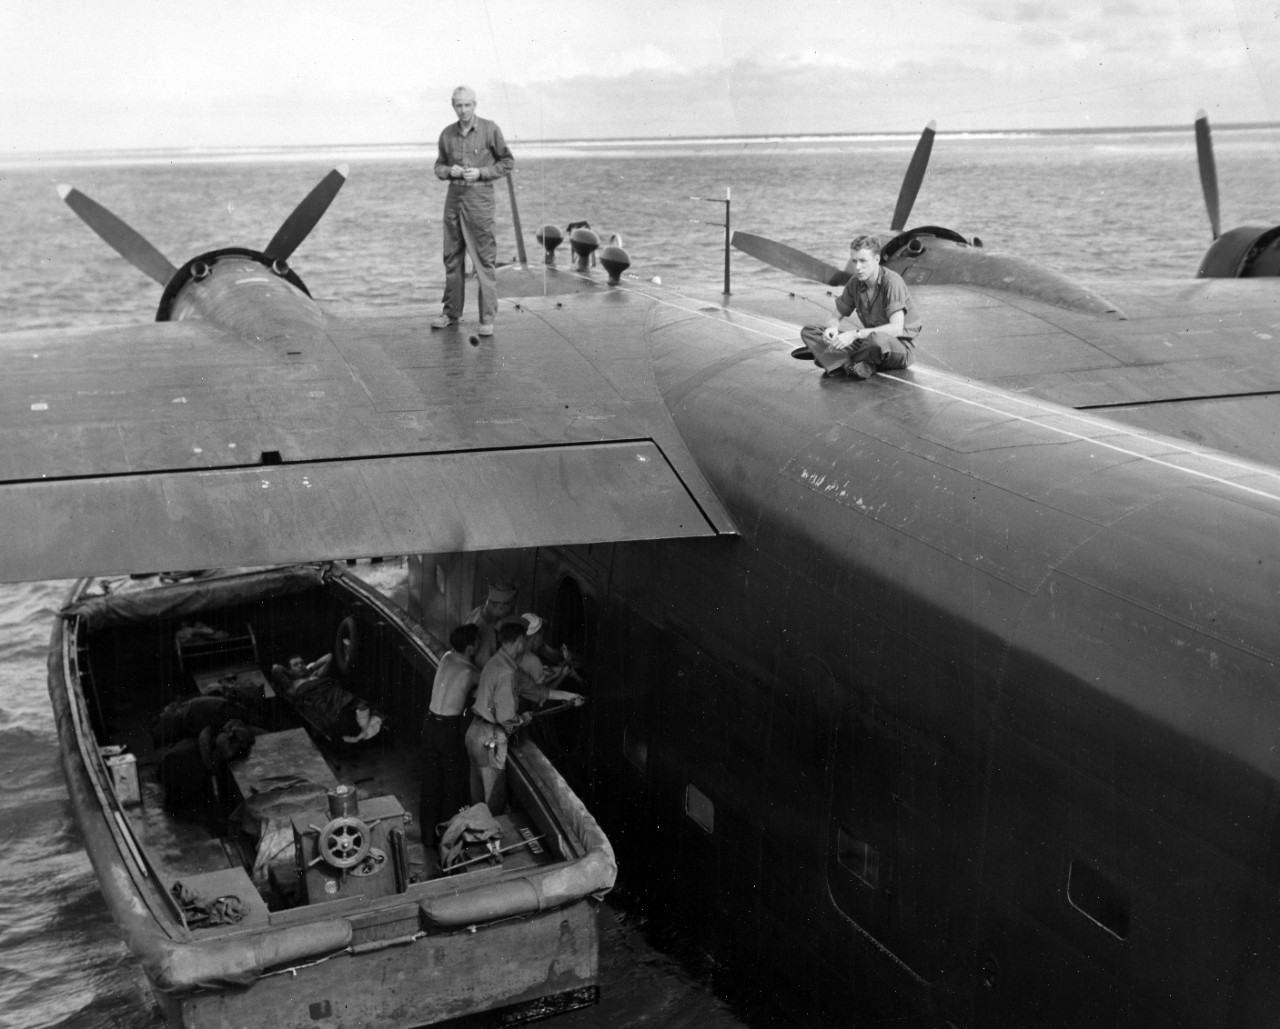 Loading cargo on to Naval Air Transport Service (NATS) aircraft at Ulithi Atoll, 1944.